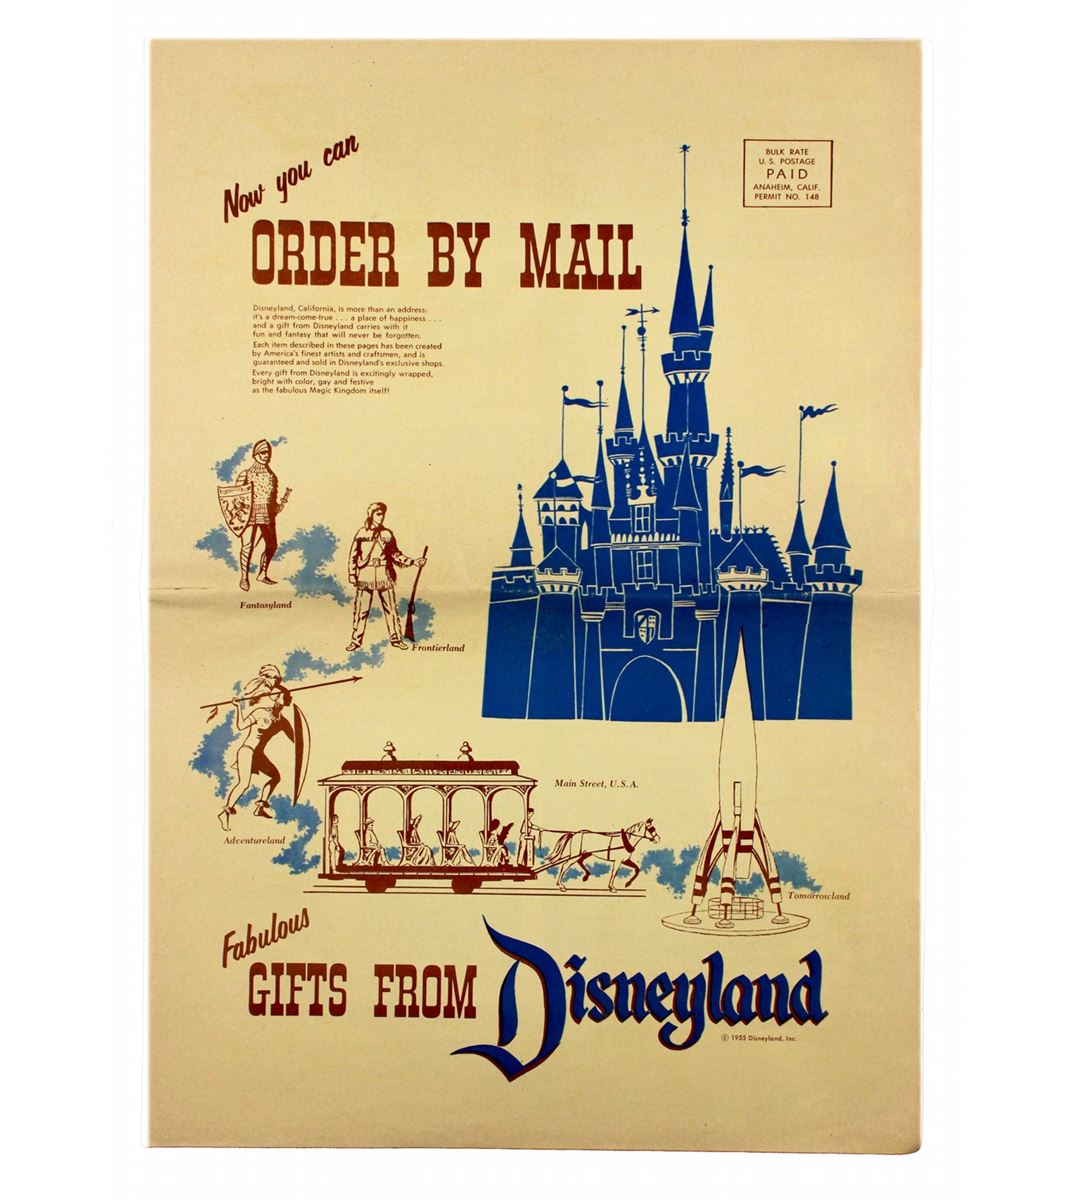 Image 1 : Fabulous Gifts From Disneyland Mail order catalog.